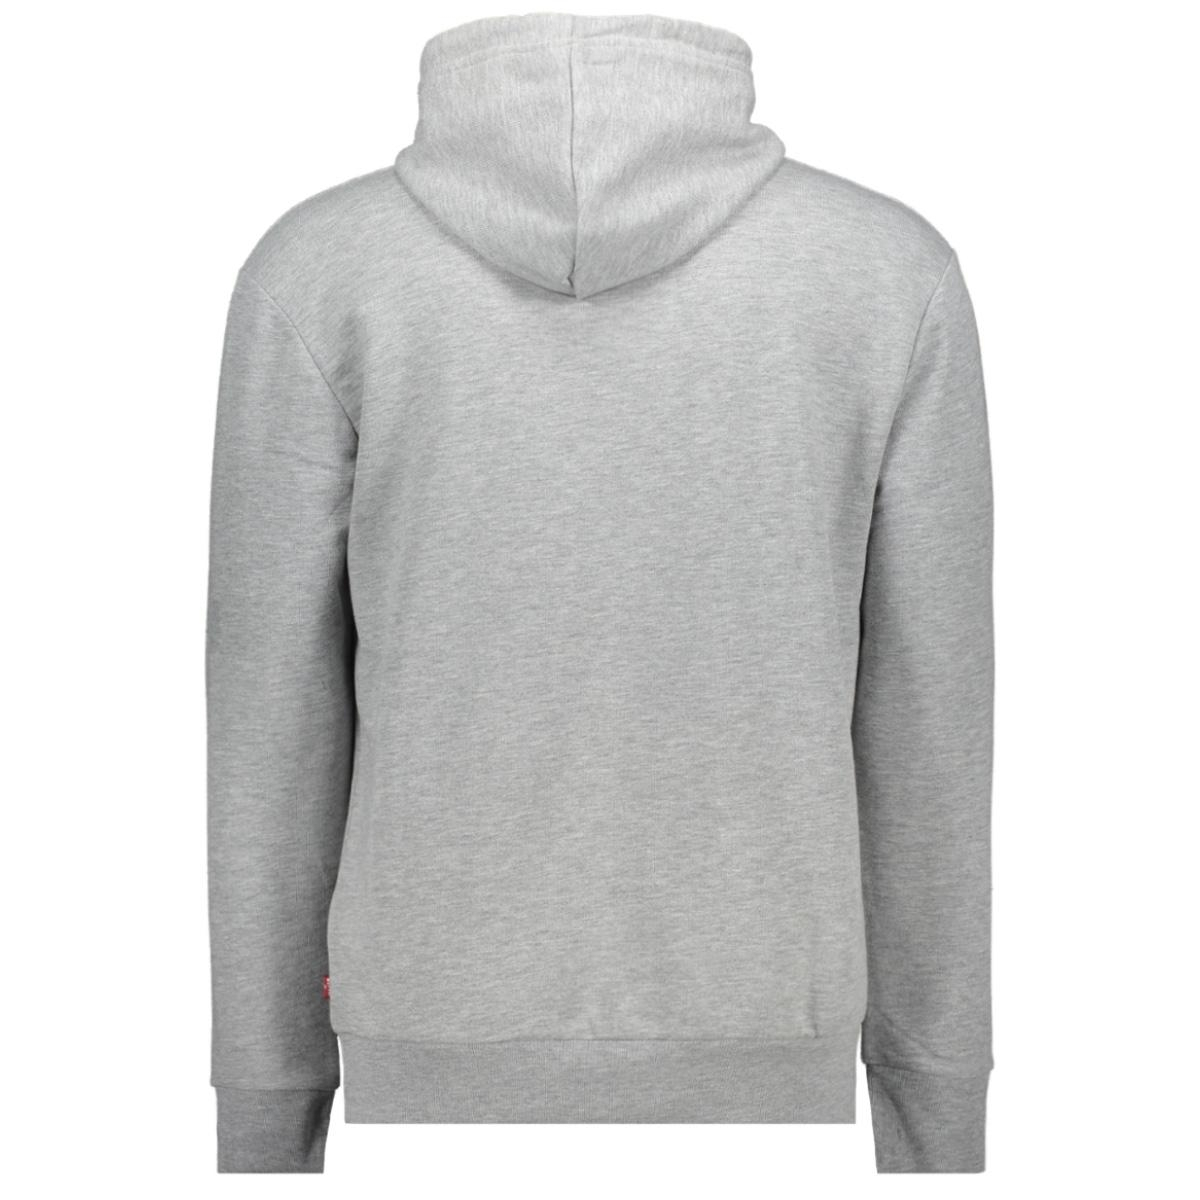 196220008 levi`s sweater grey